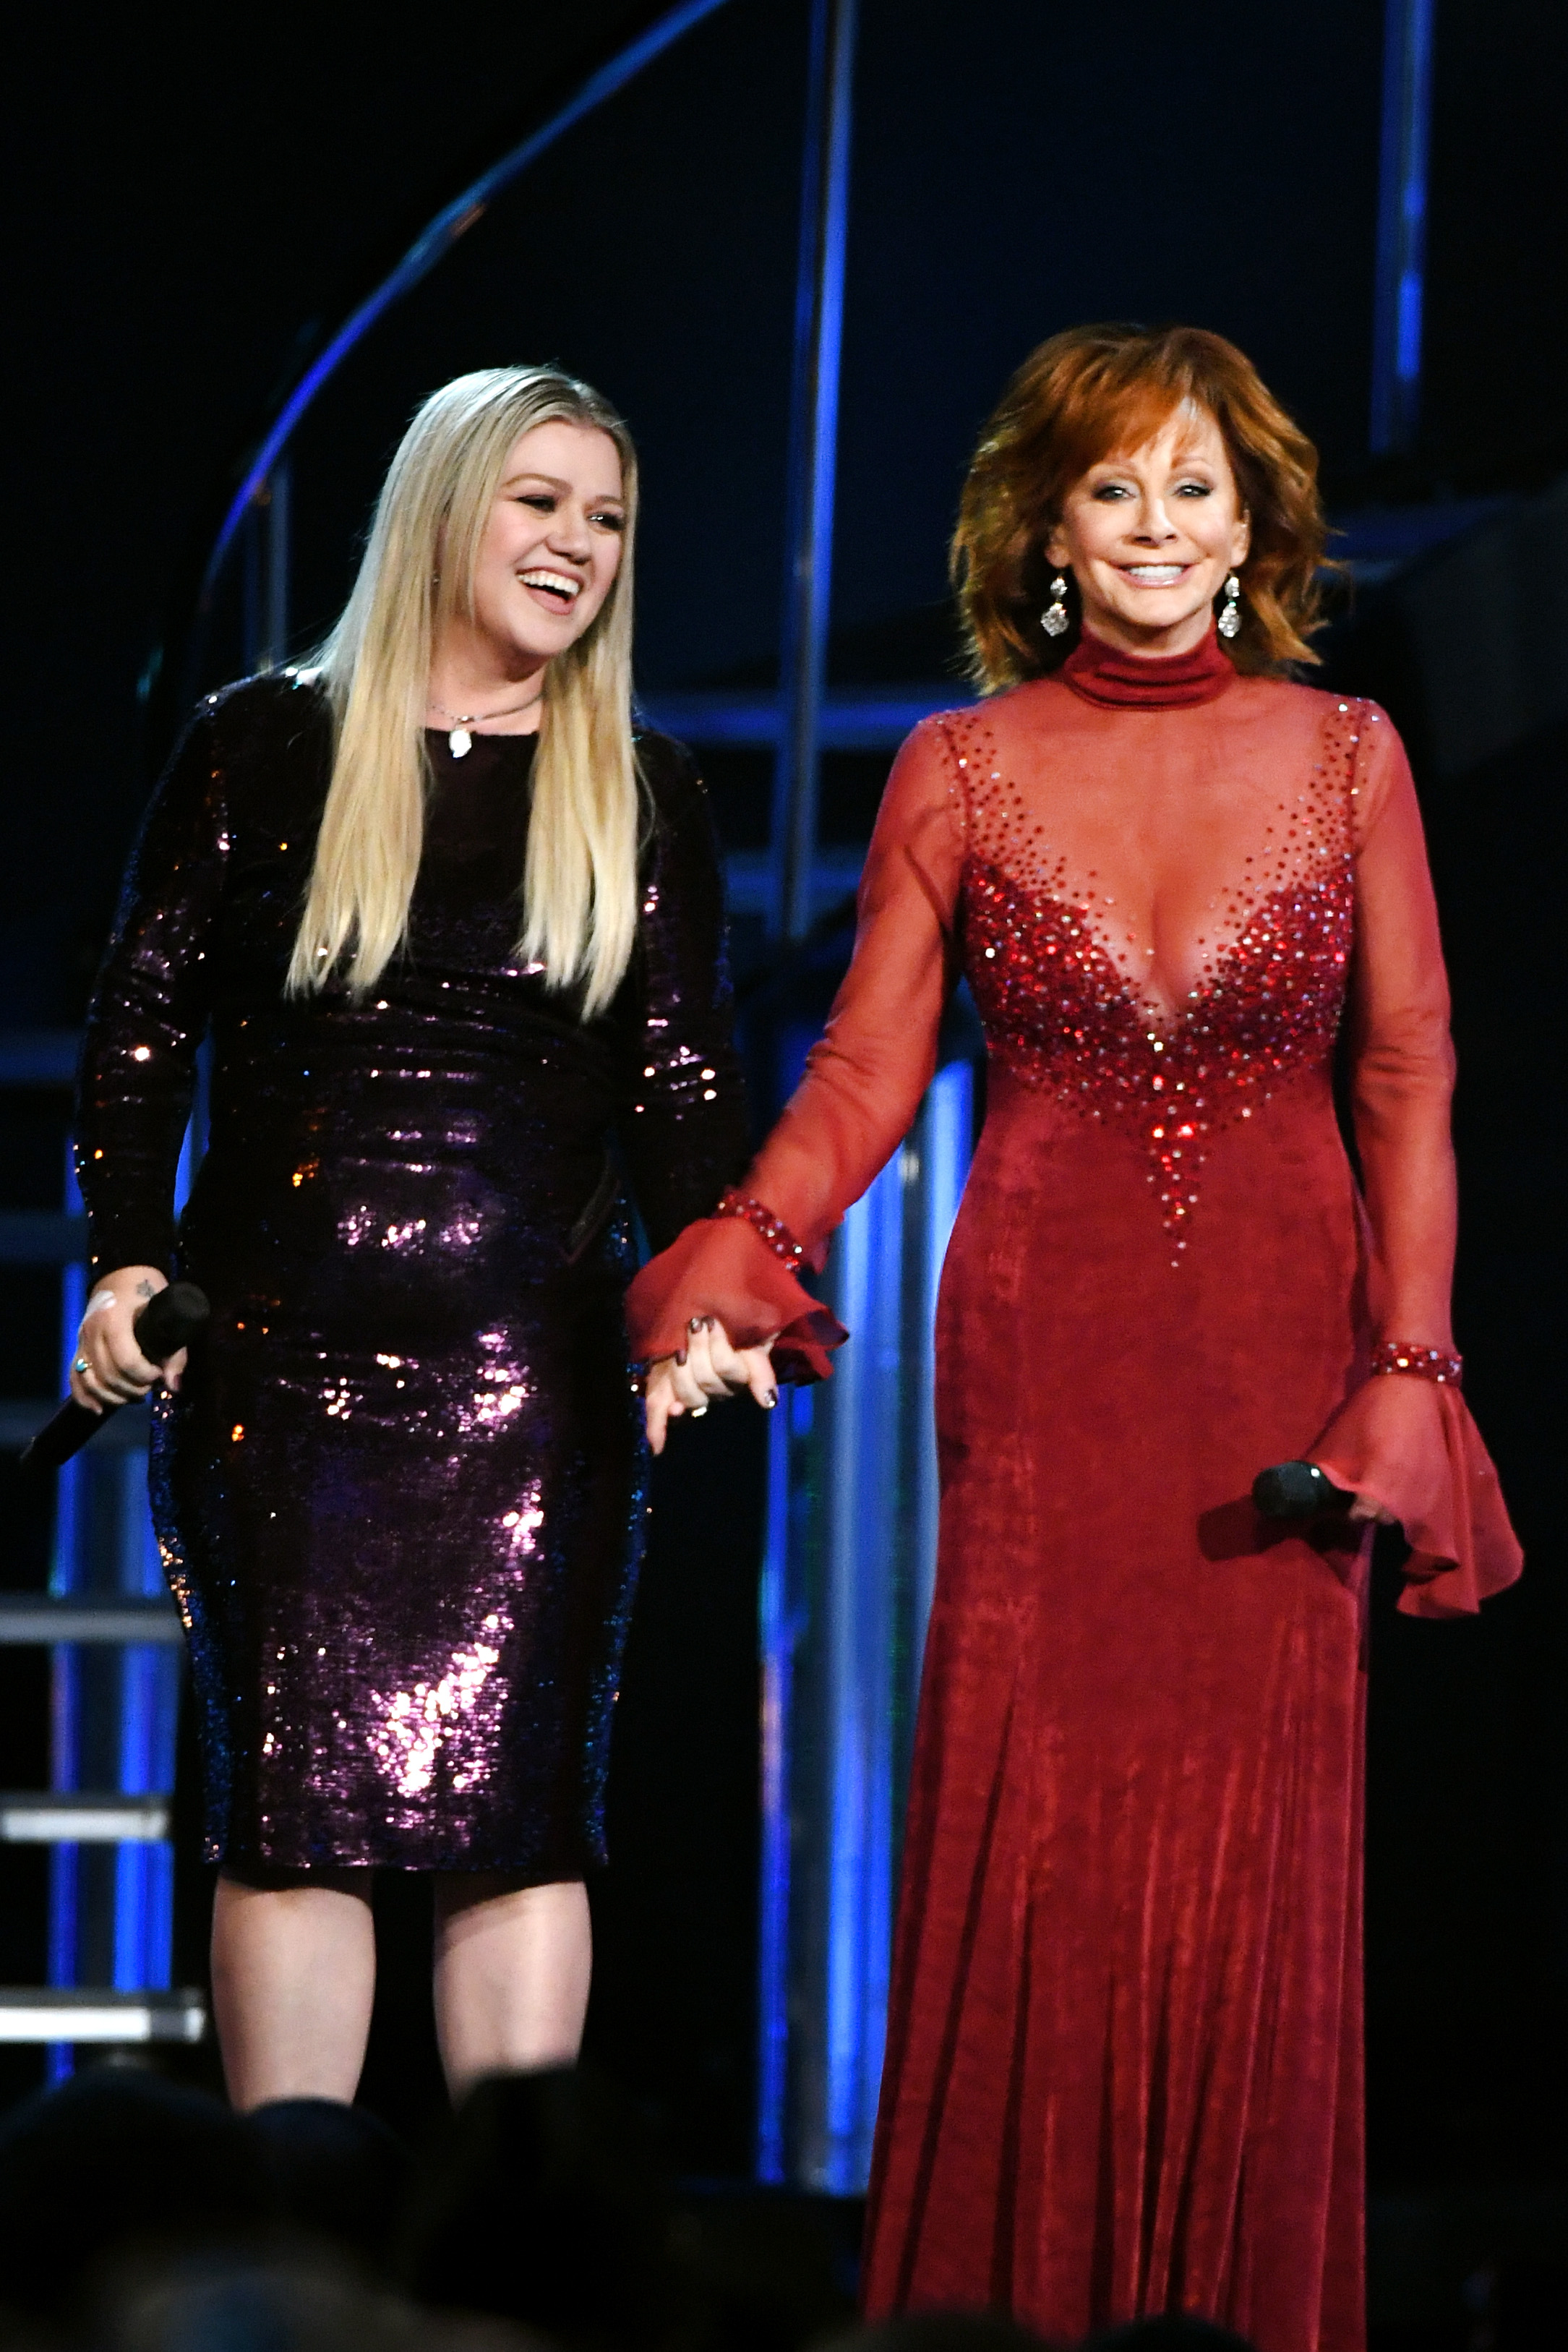 Kelly Clarkson and host Reba McEntire perform onstage during the 53rd Academy of Country Music Awards at MGM Grand Garden Arena on April 15, 2018 in Las Vegas, Nevada. (Photo by Ethan Miller/Getty Images)